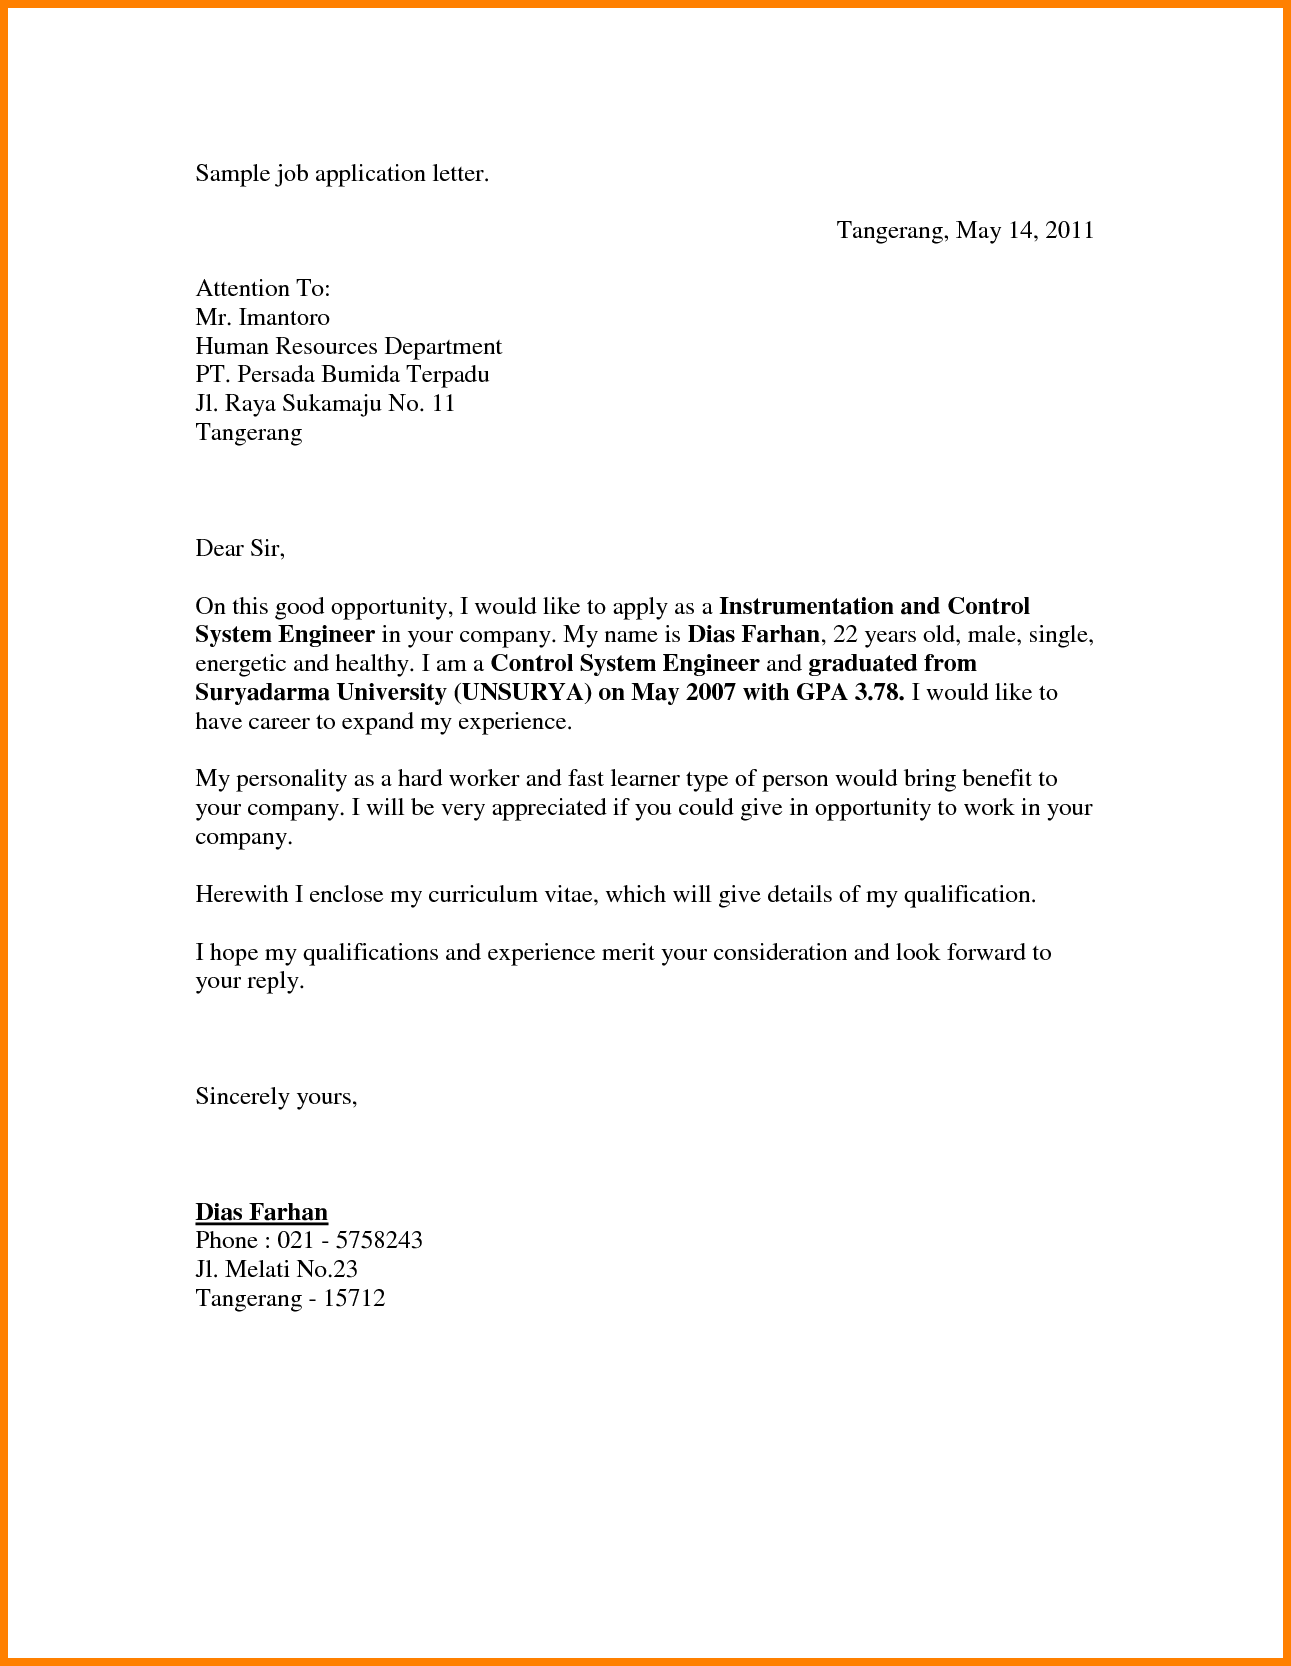 sample job application letter by dedew93